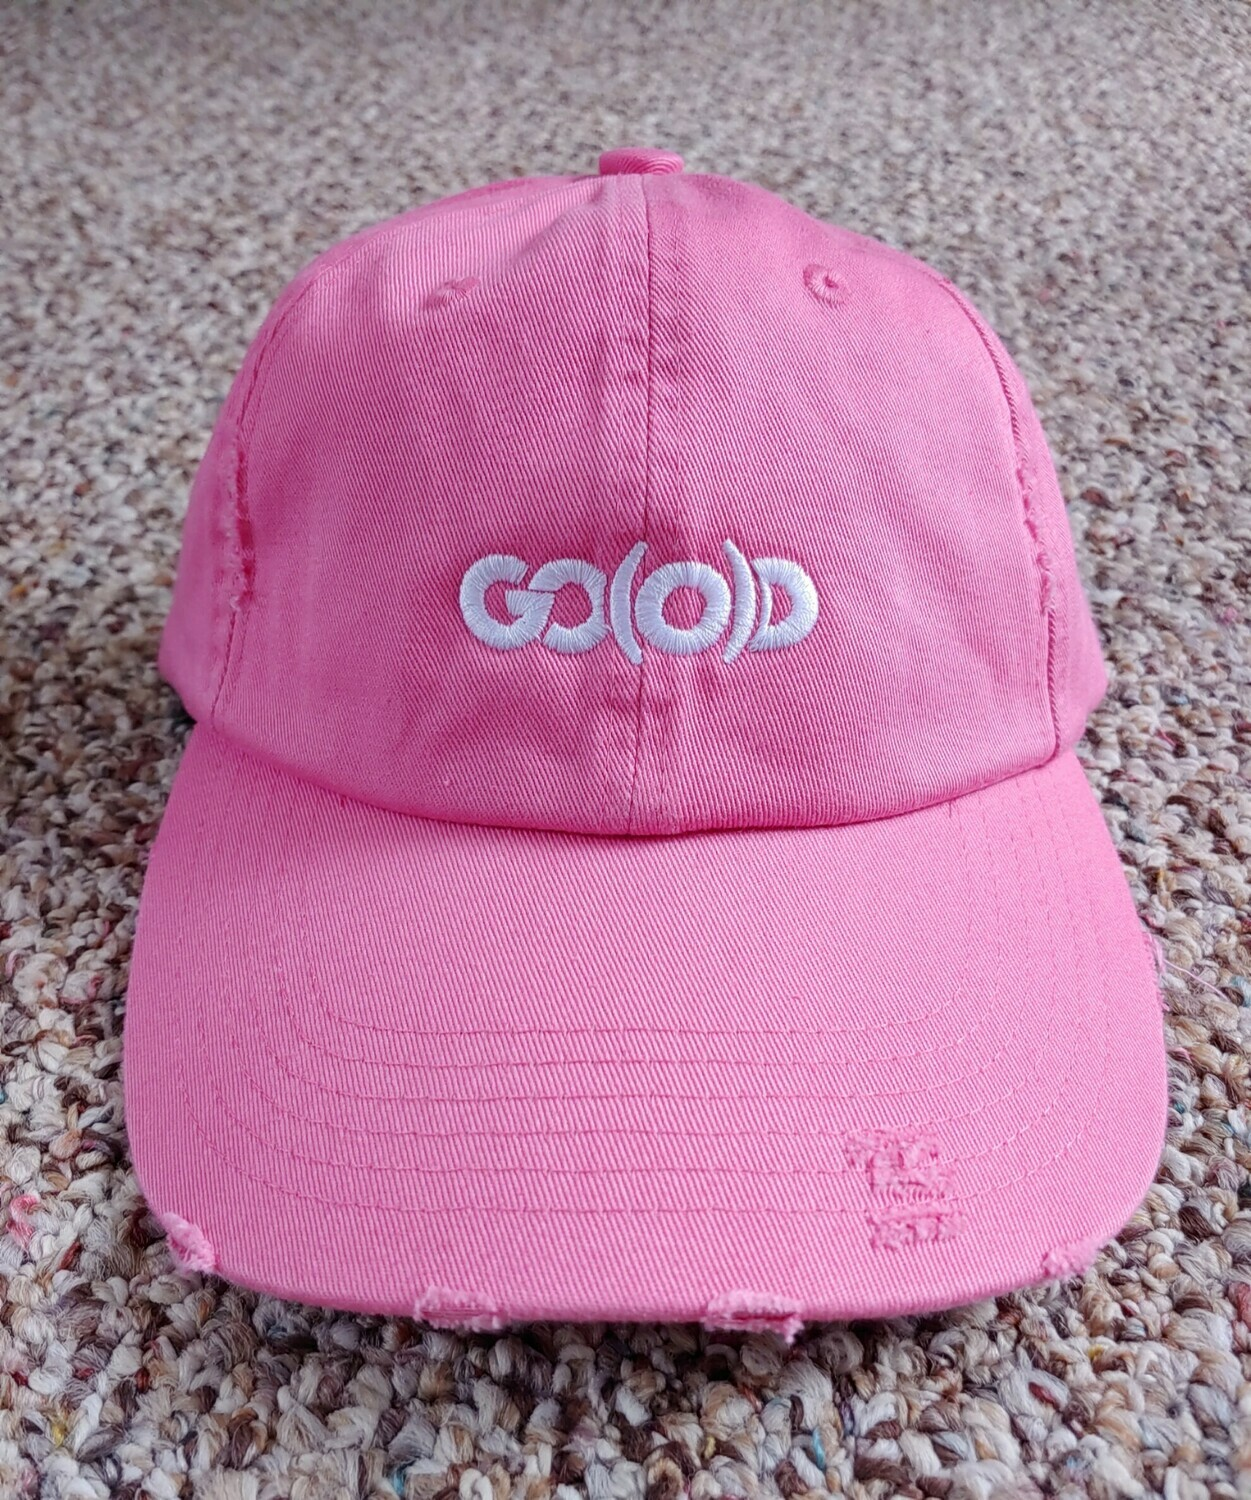 GO(O)D Distressed Dad Hat-pink